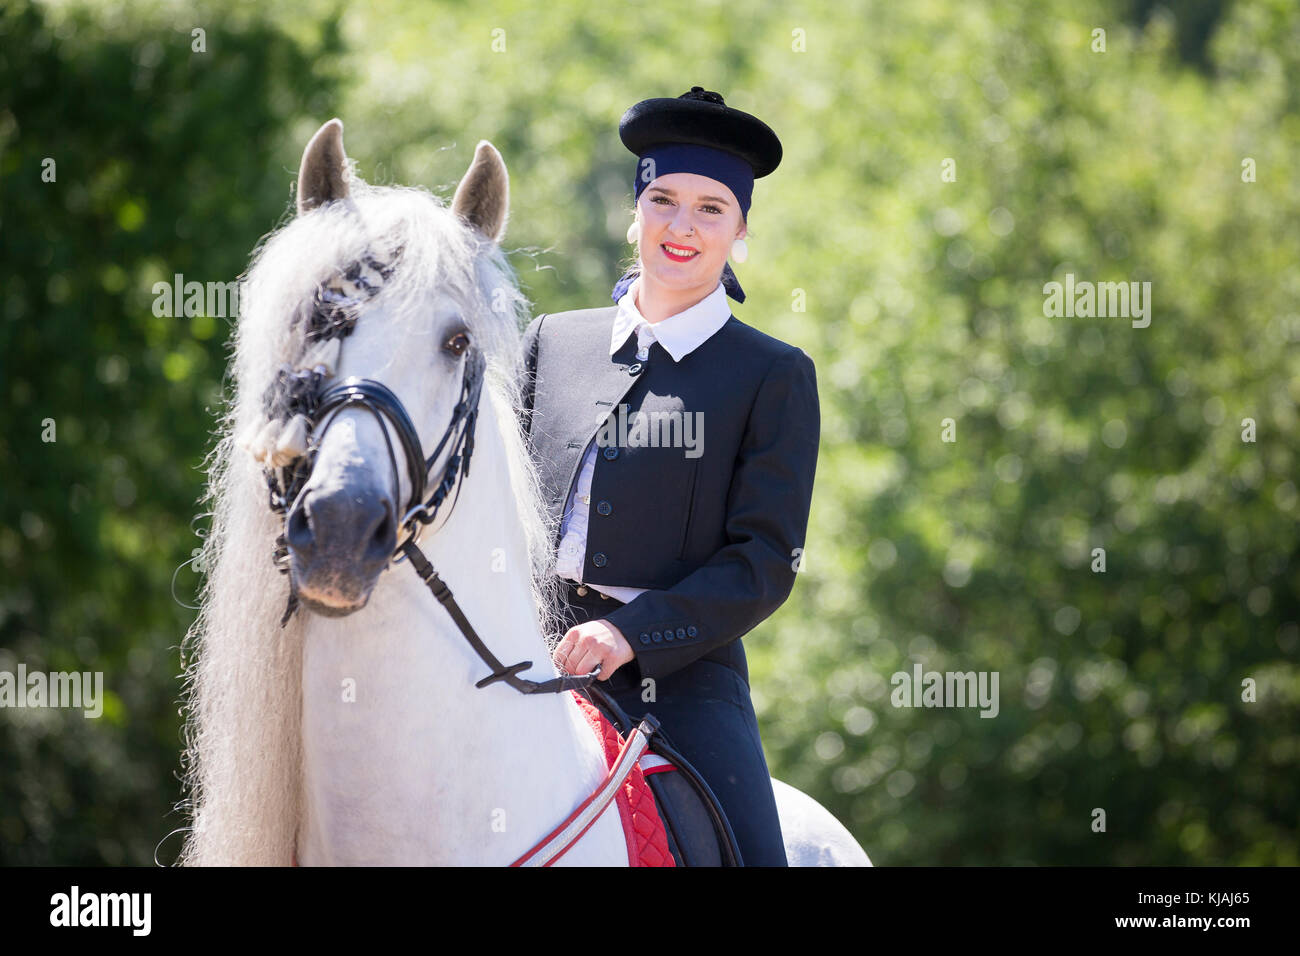 Pure Spanish Horse, Andalusian. Rider in traditional dress on gray stallion on a riding place. Austria - Stock Image